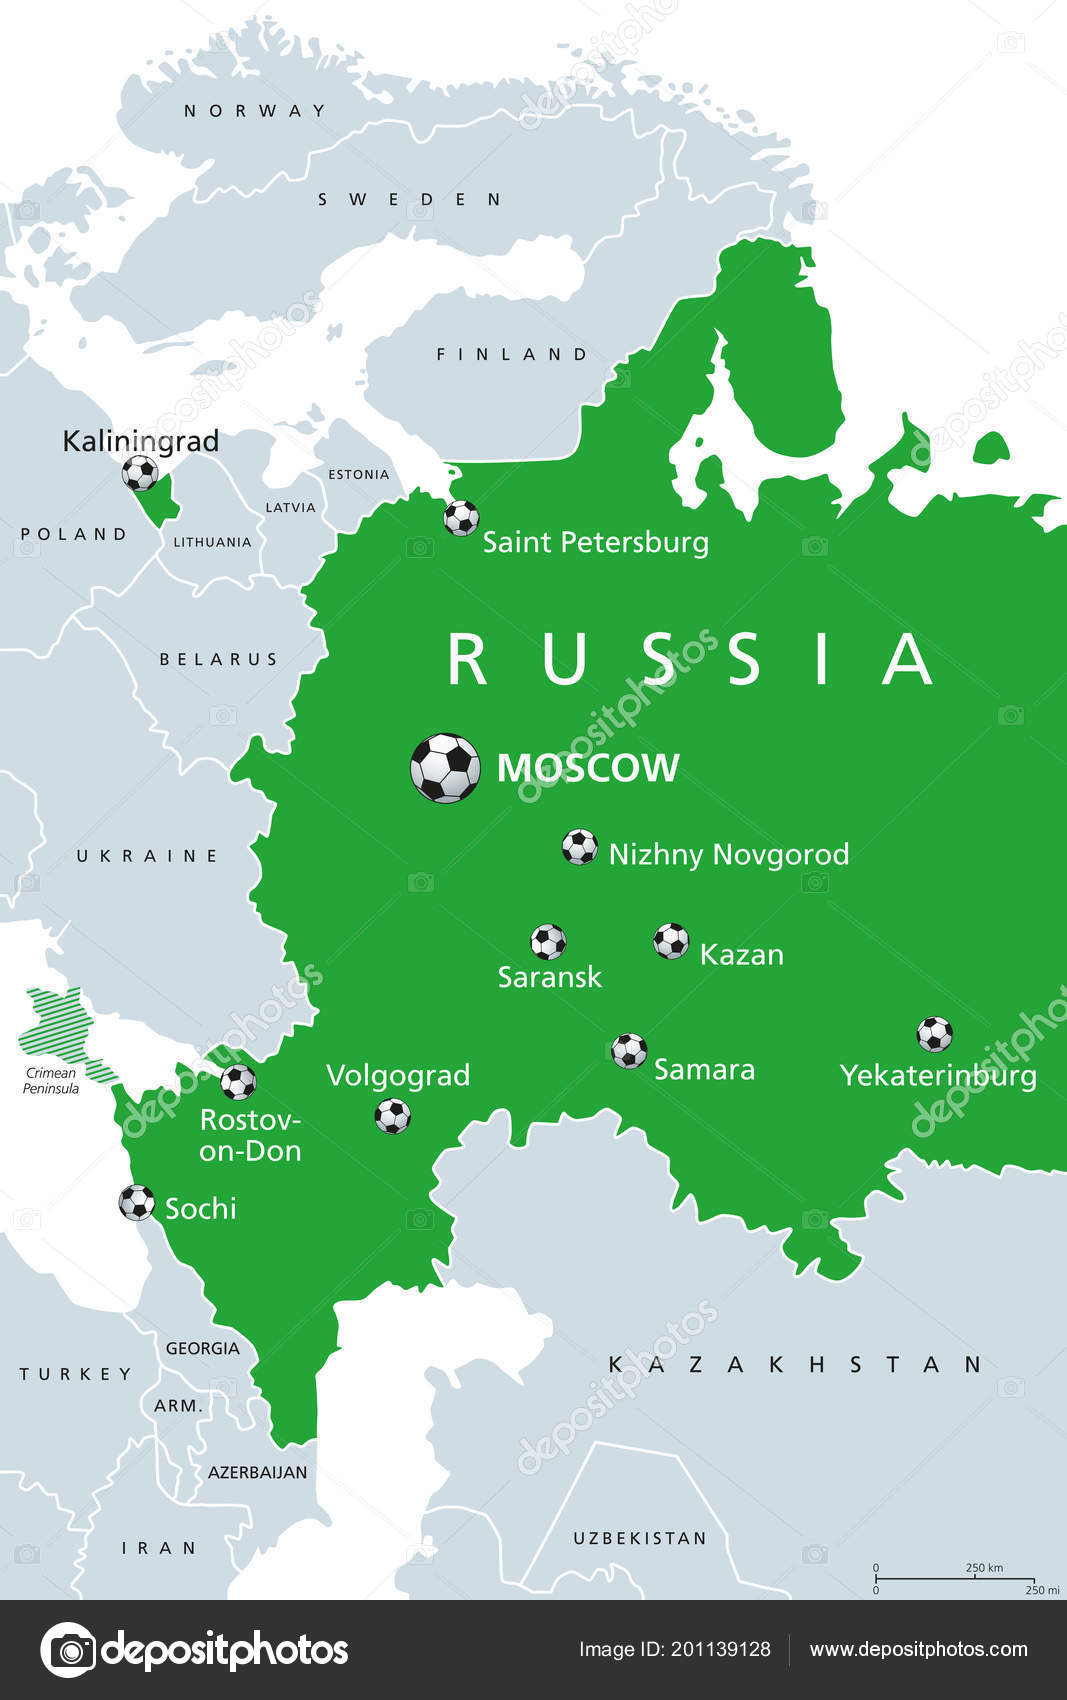 Russian Map Of Russia.Football Russia 2018 Map Venues Soccer European Western Part Russian